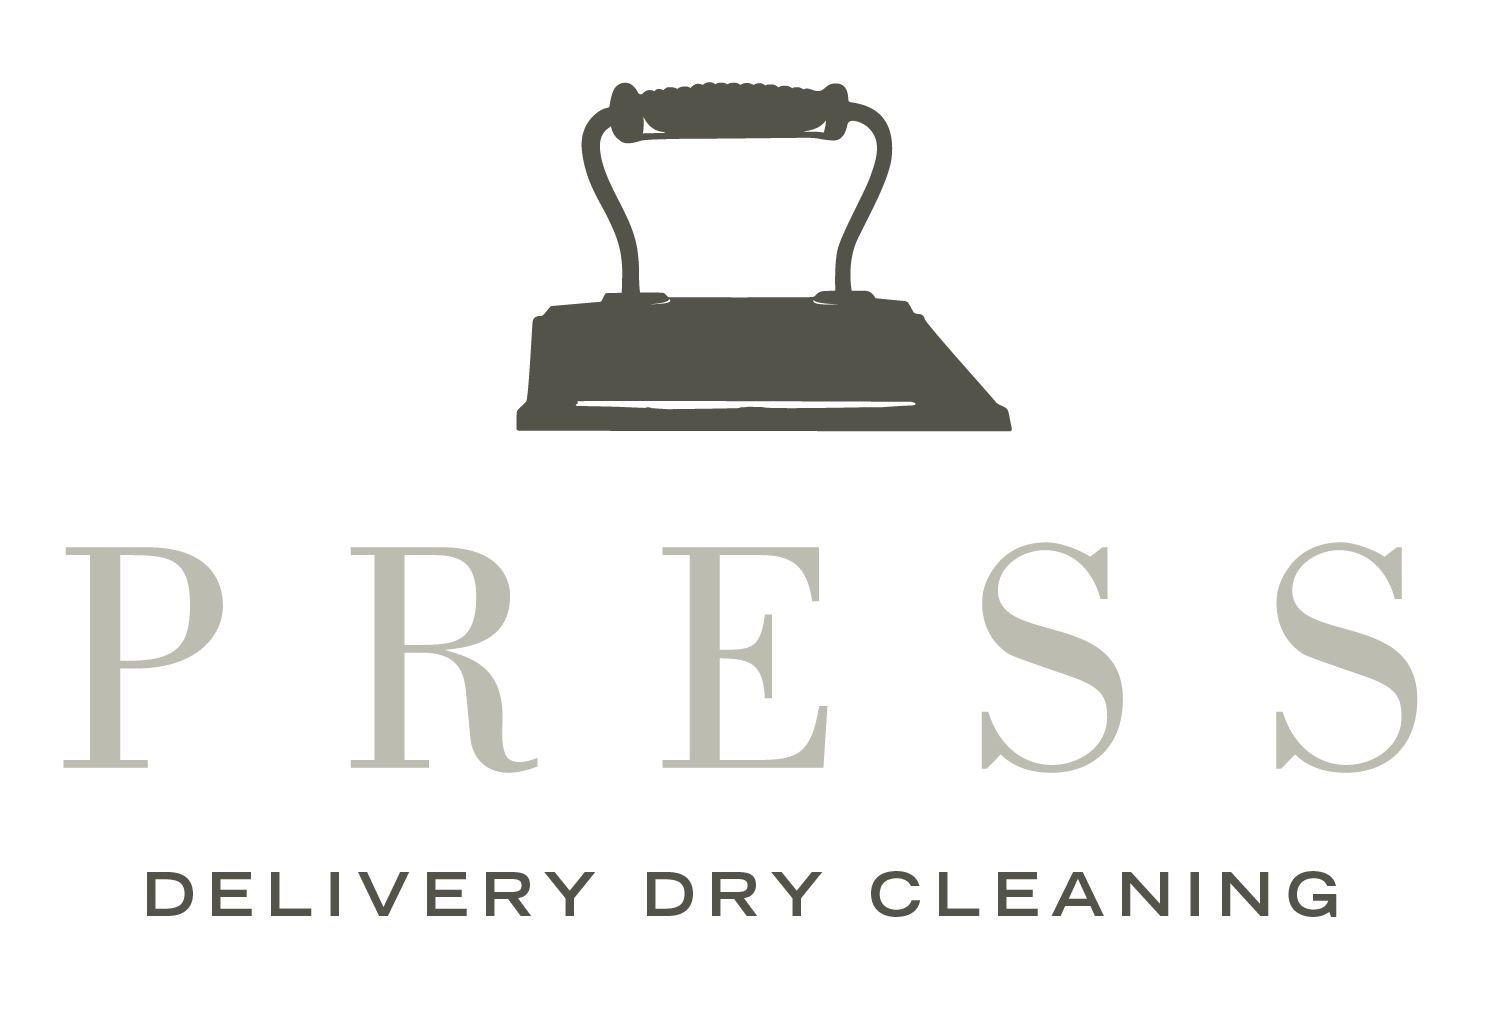 Press Cleaners